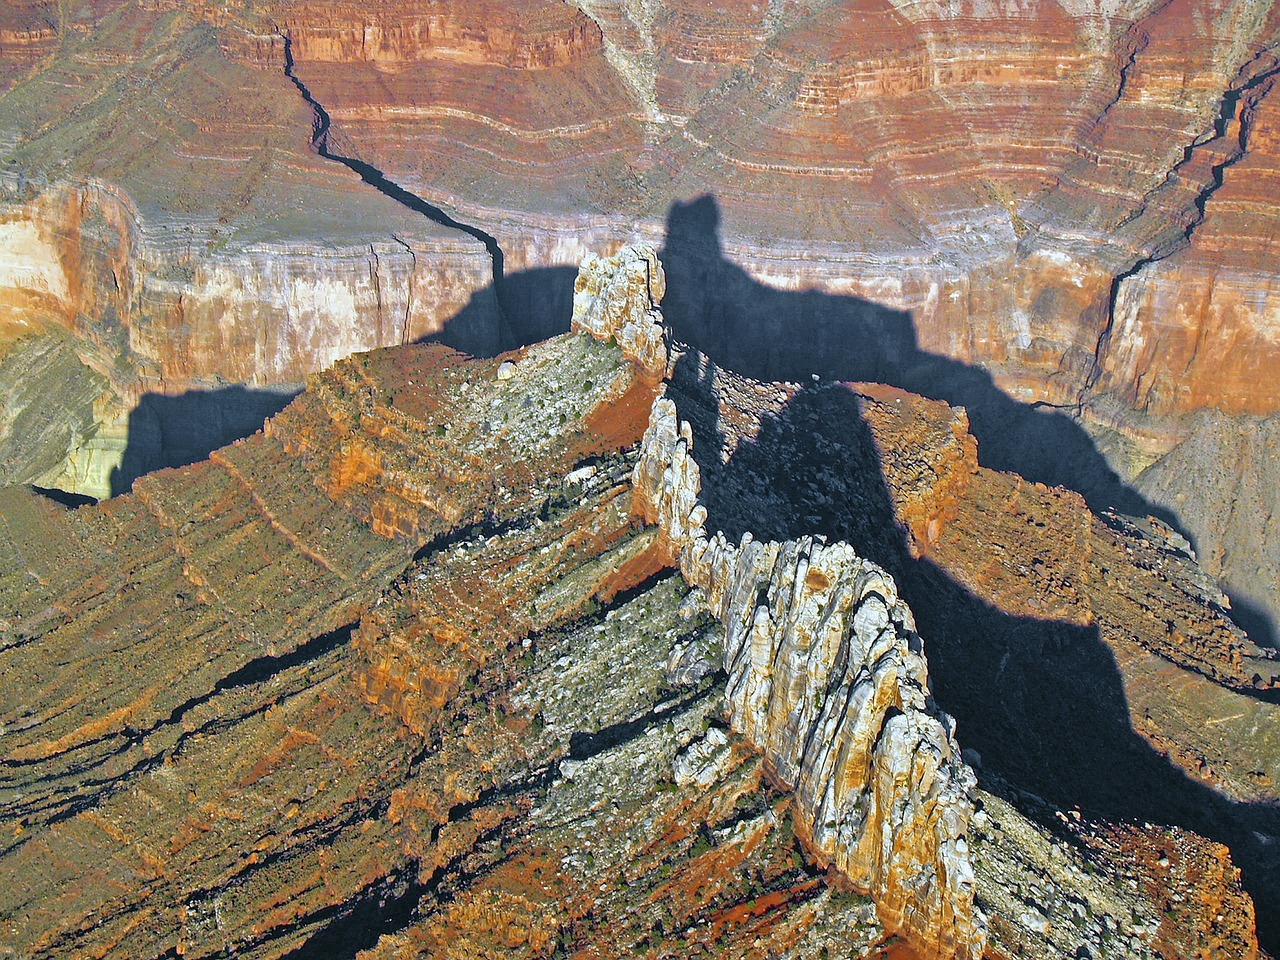 grand canyon,aerial view,landscape,nature,tourist attraction,arizona,usa,rocks,free pictures, free photos, free images, royalty free, free illustrations, public domain